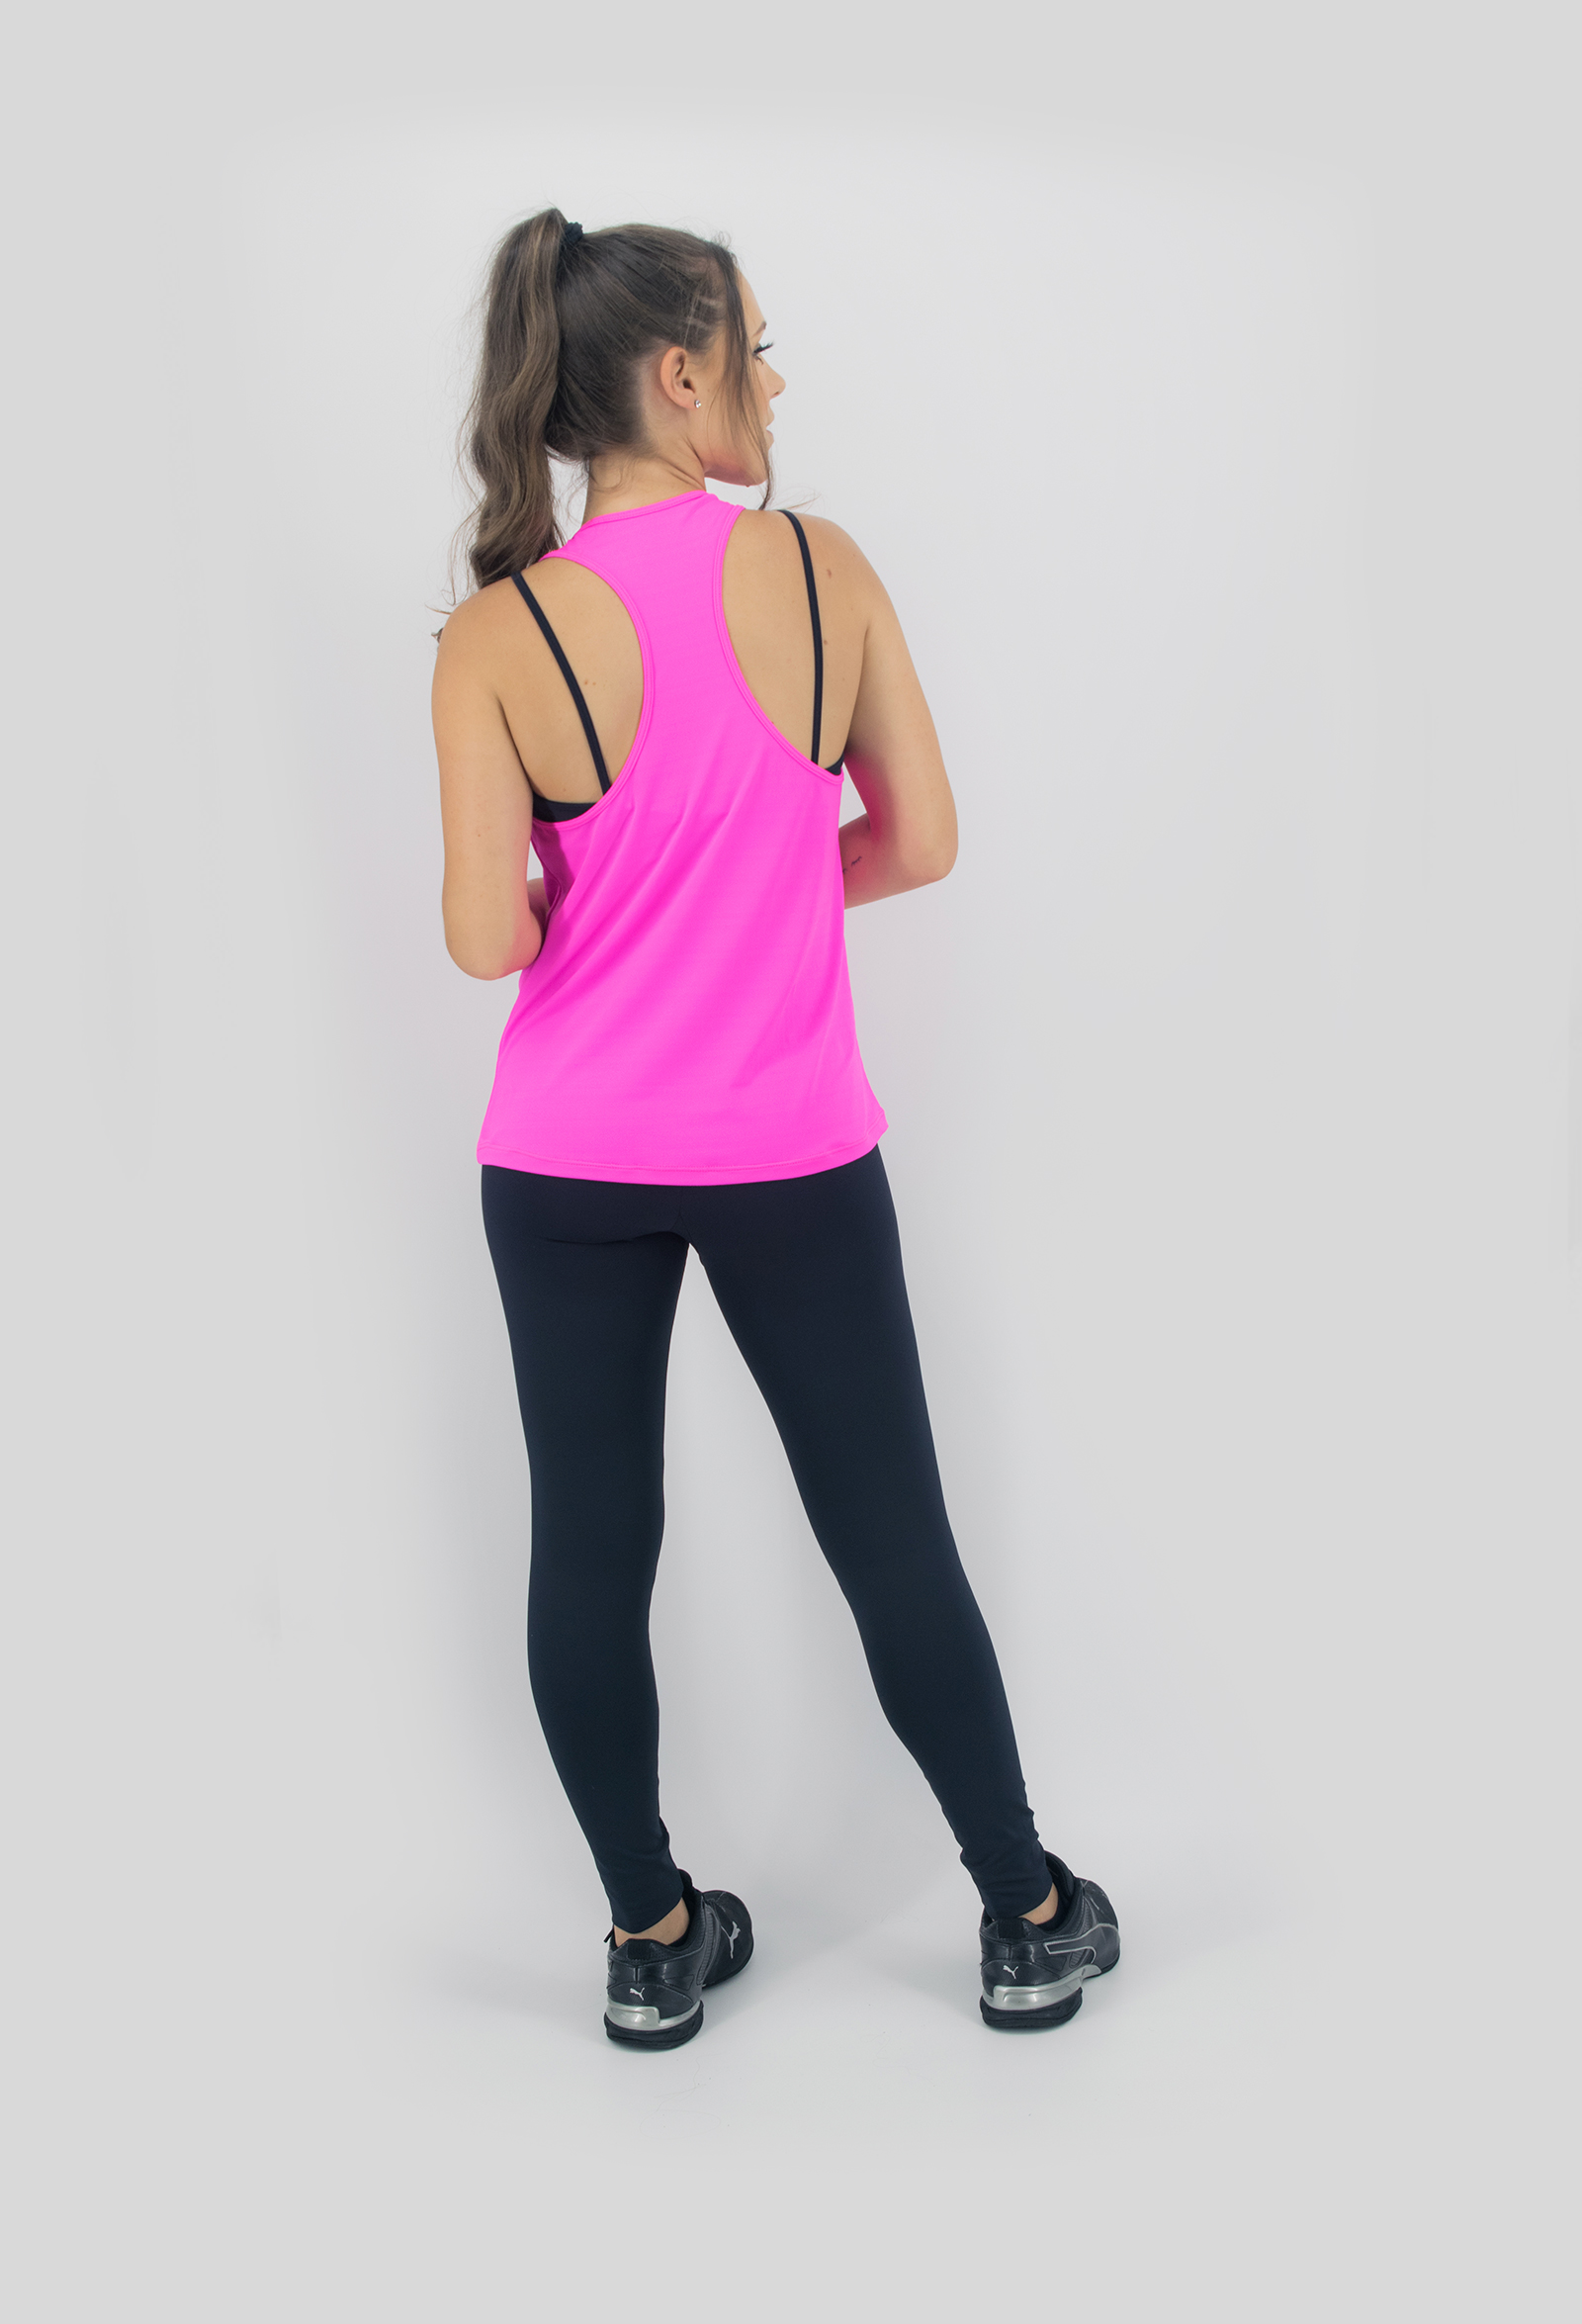 Regata NKT Pink, Coleção Move Your Body - NKT Fitwear Moda Fitness